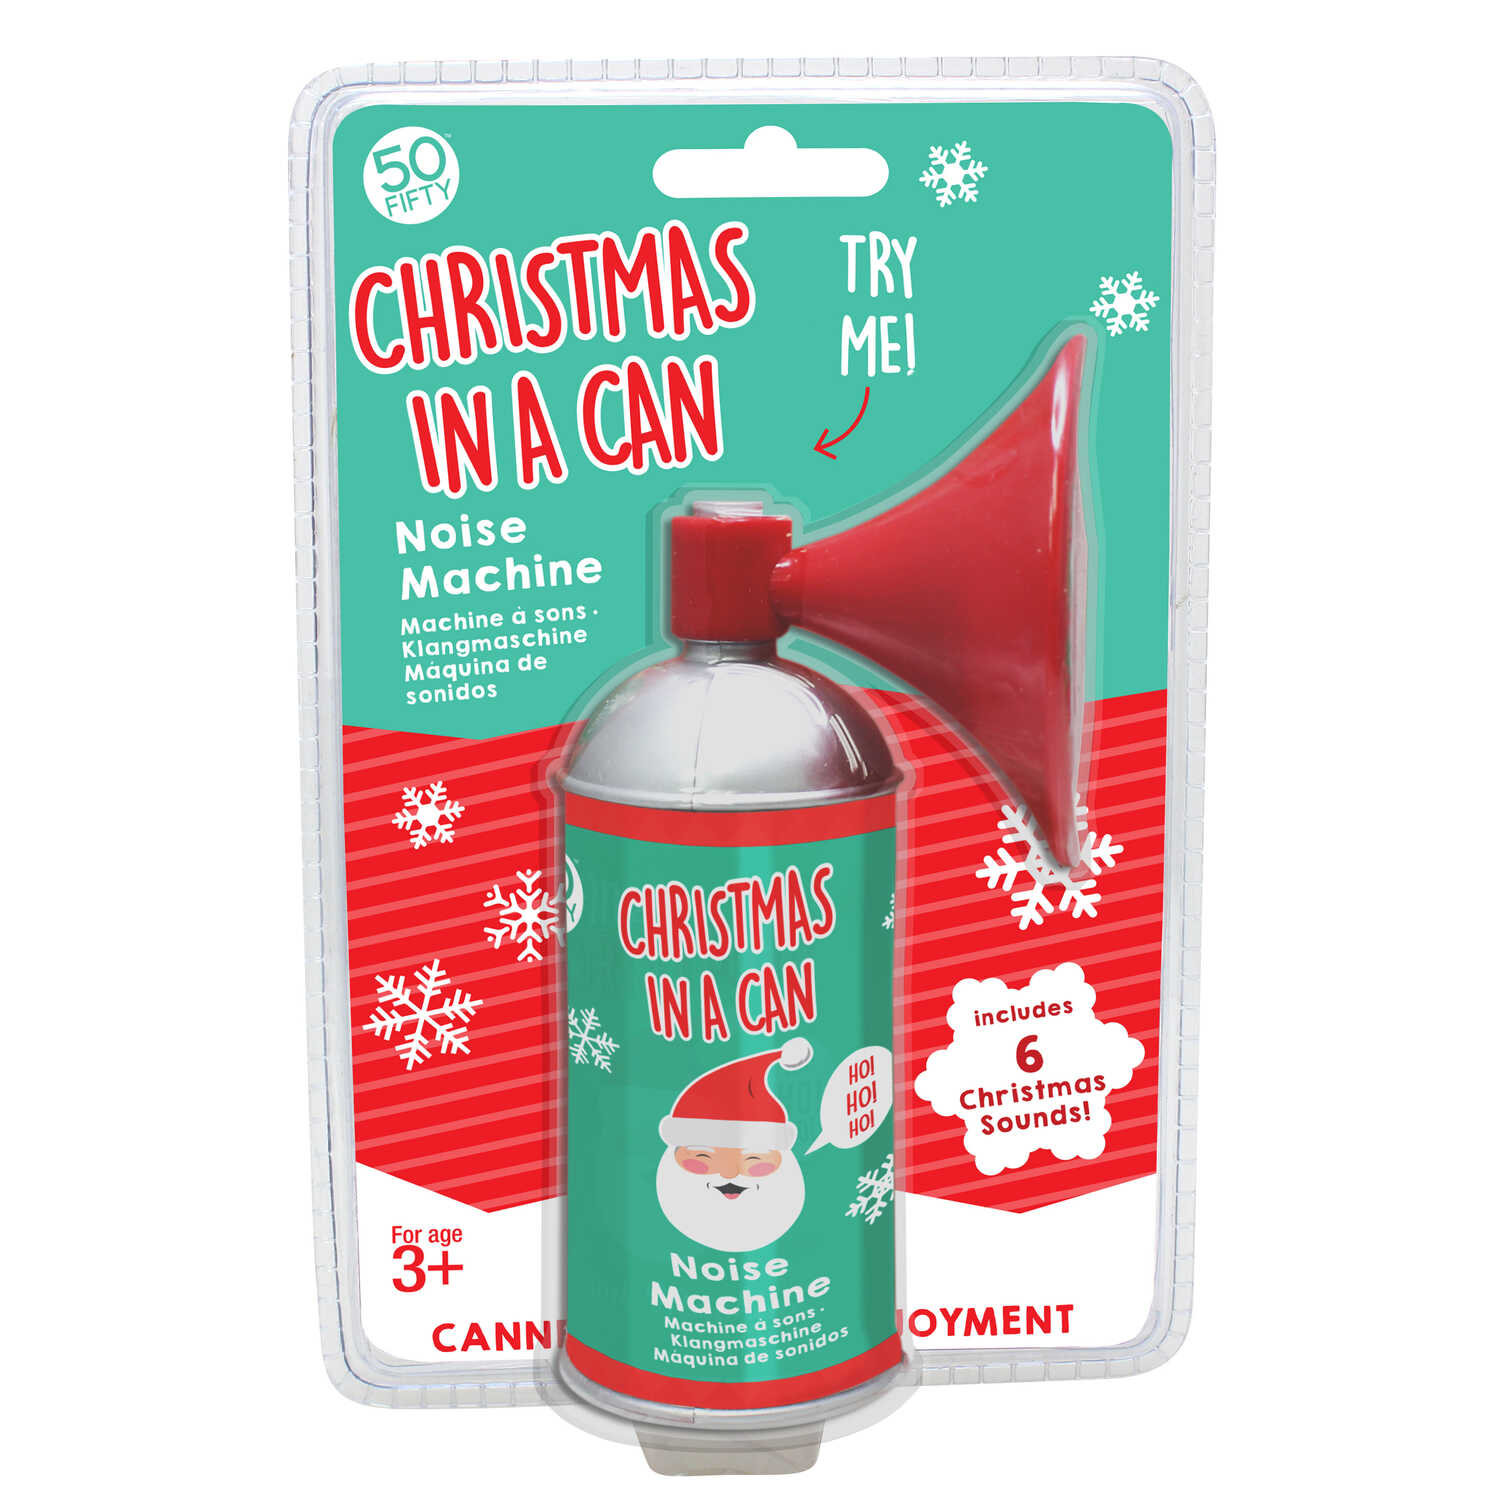 50 Fifty  Christmas In a Can  Noise Machine  Red/Green  Plastic  1 each